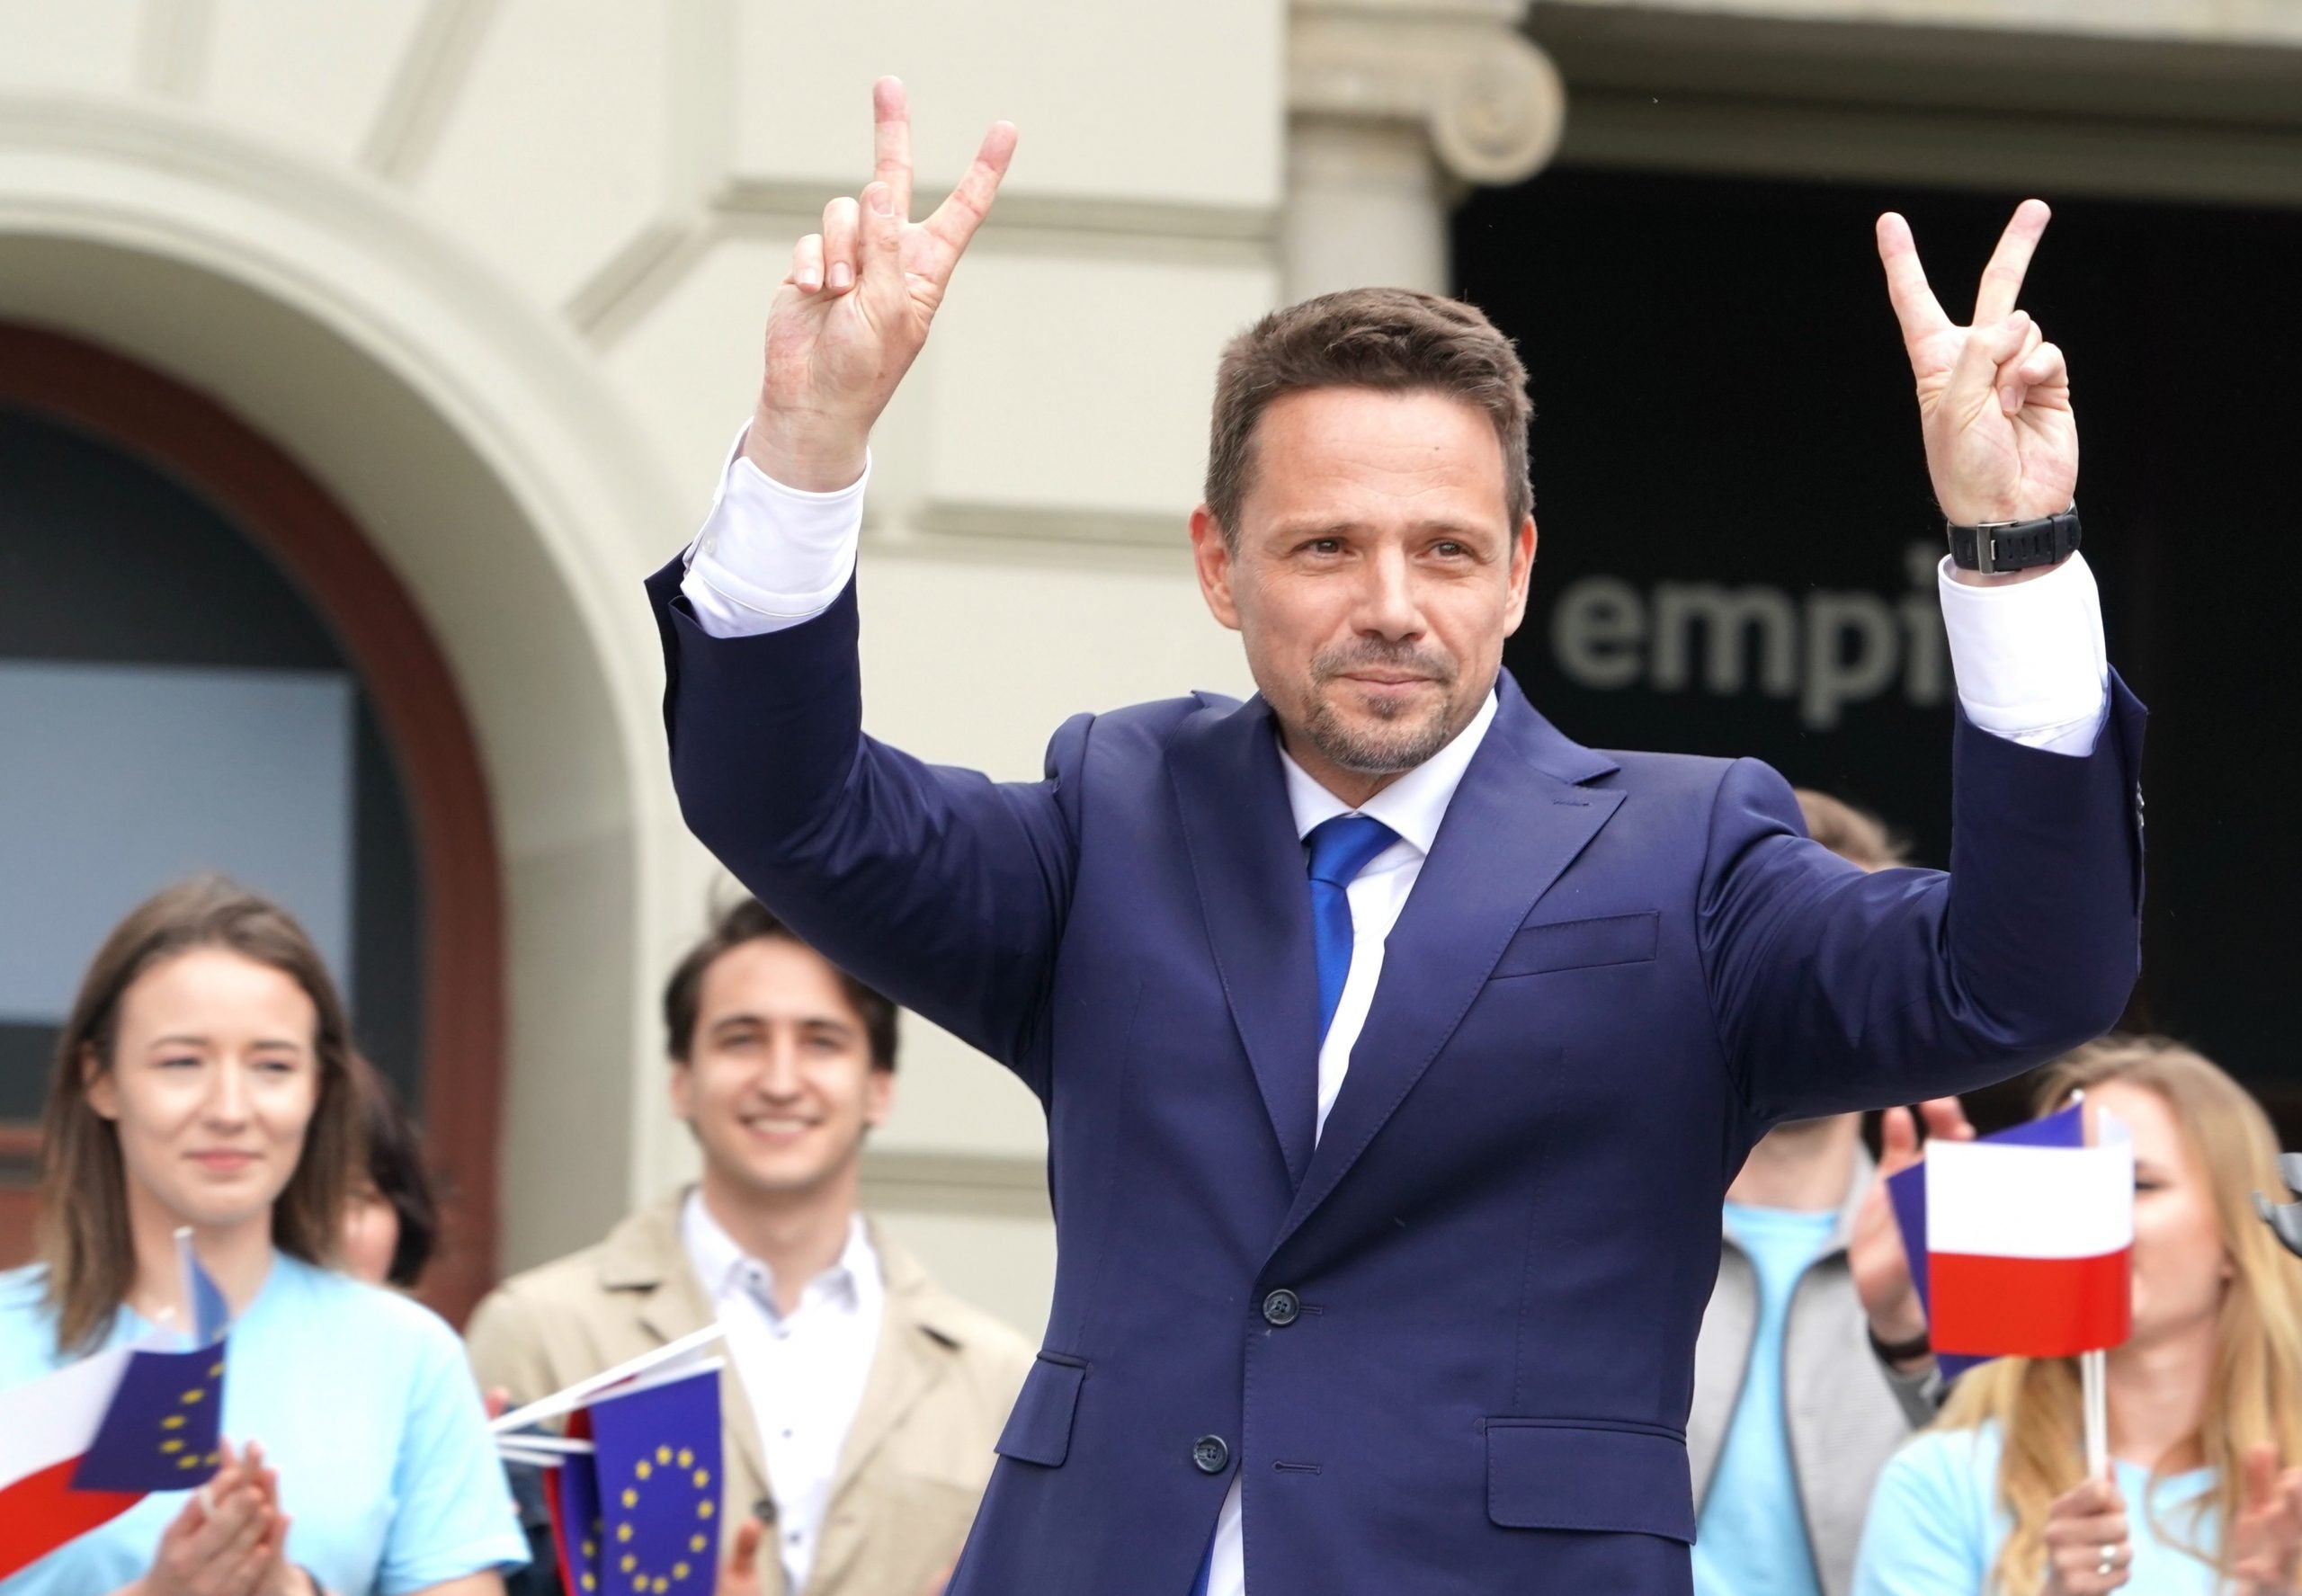 Poland's presidential election is a stark contest between an open and closed society